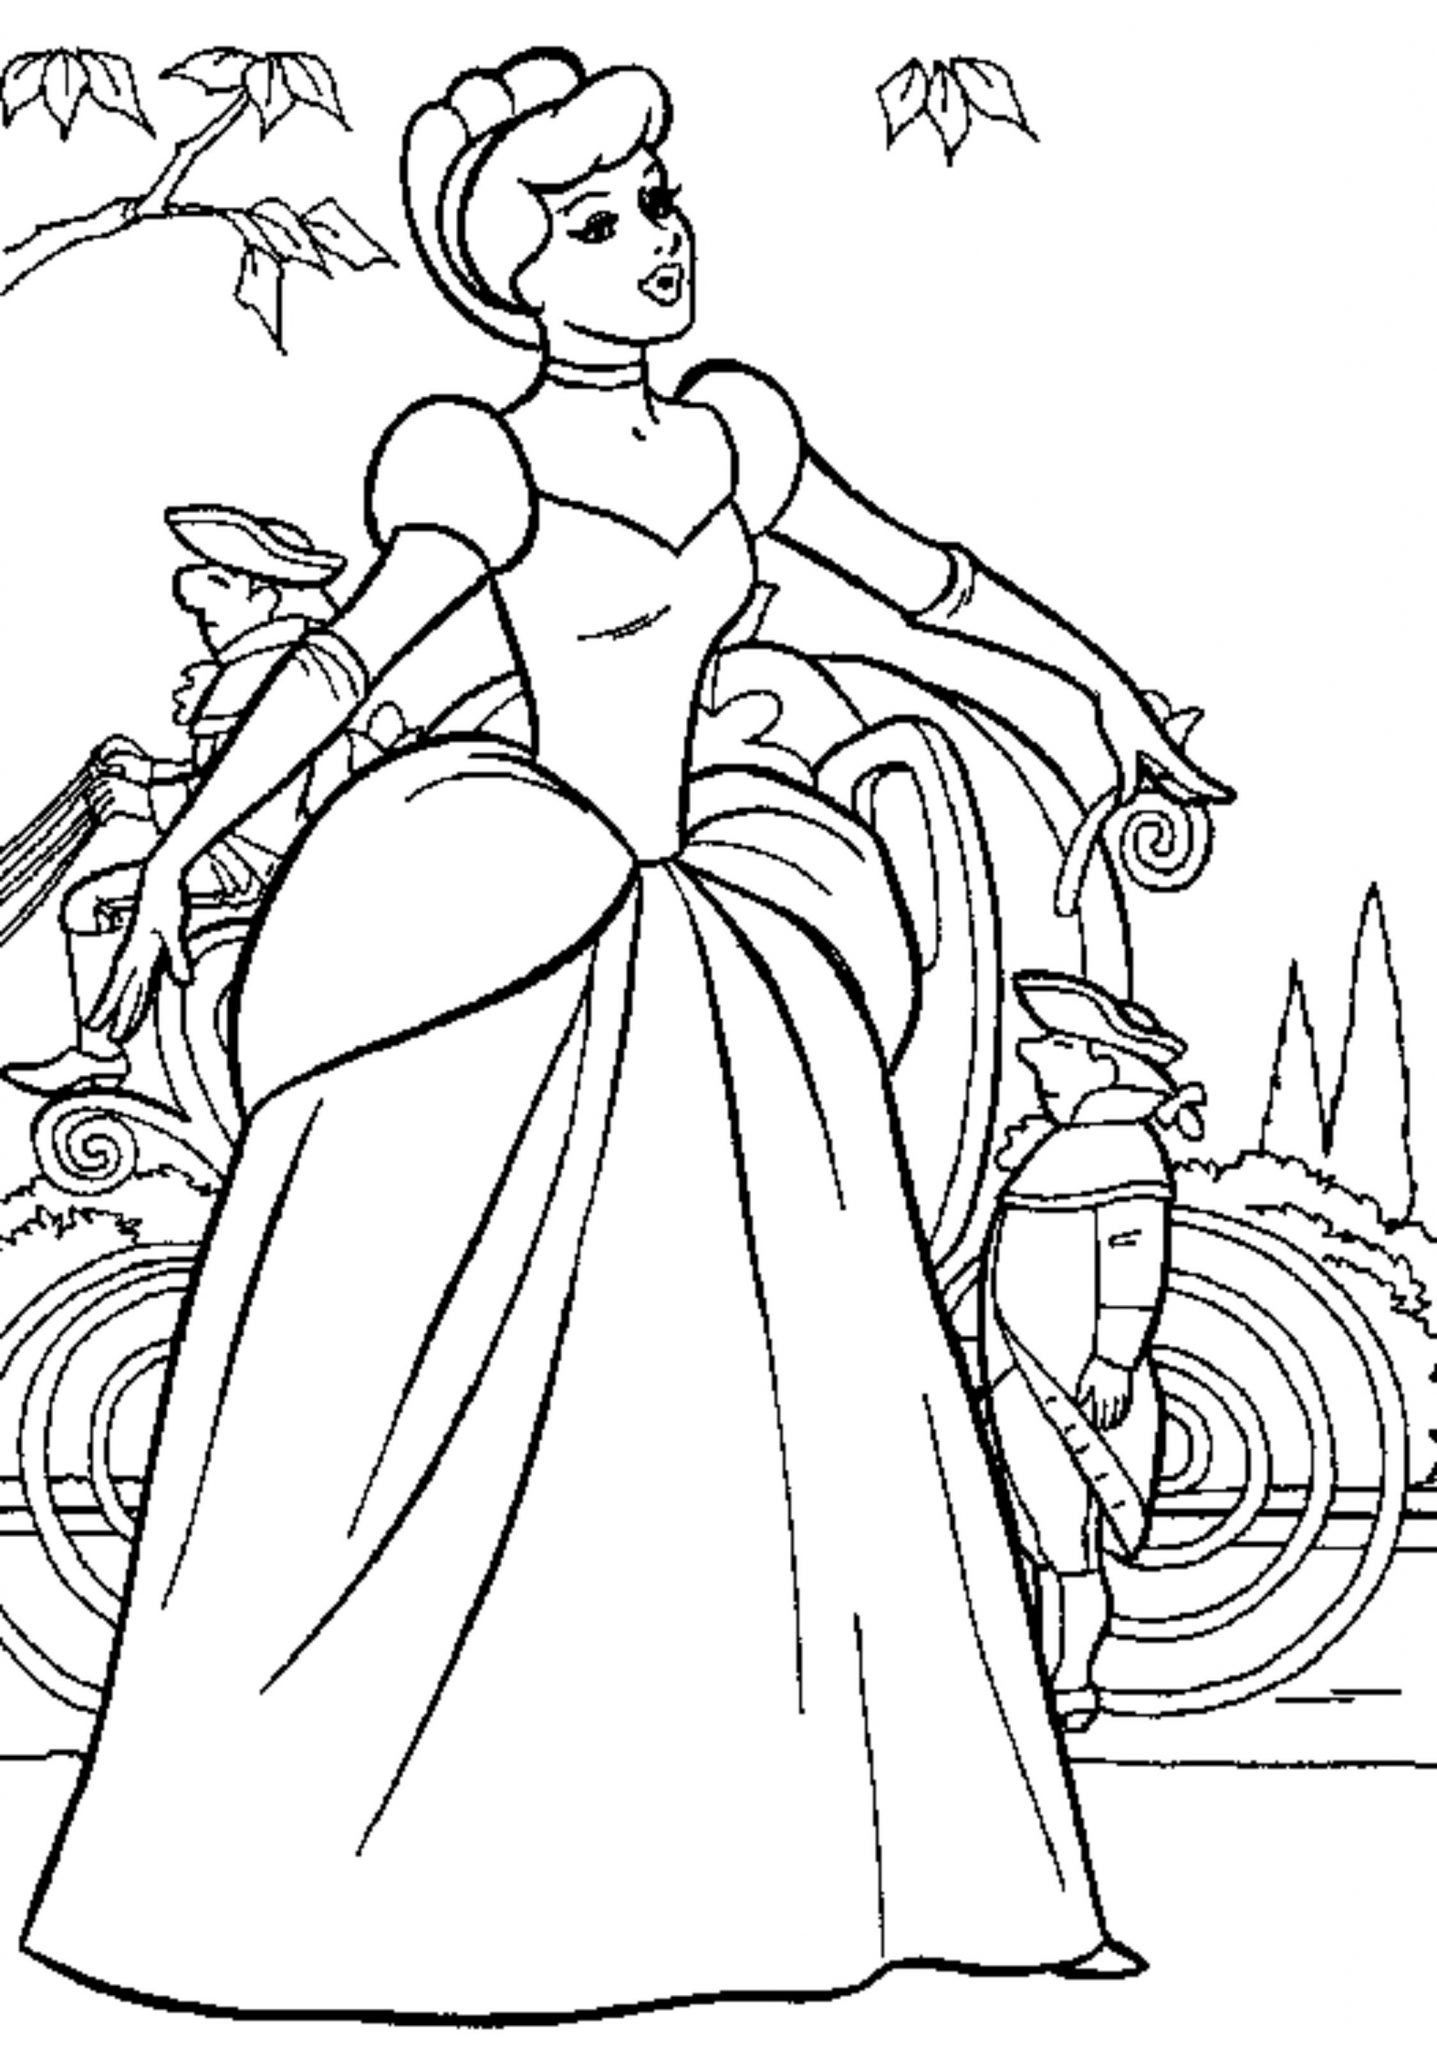 images of princess coloring pages princess coloring pages coloring of princess images pages